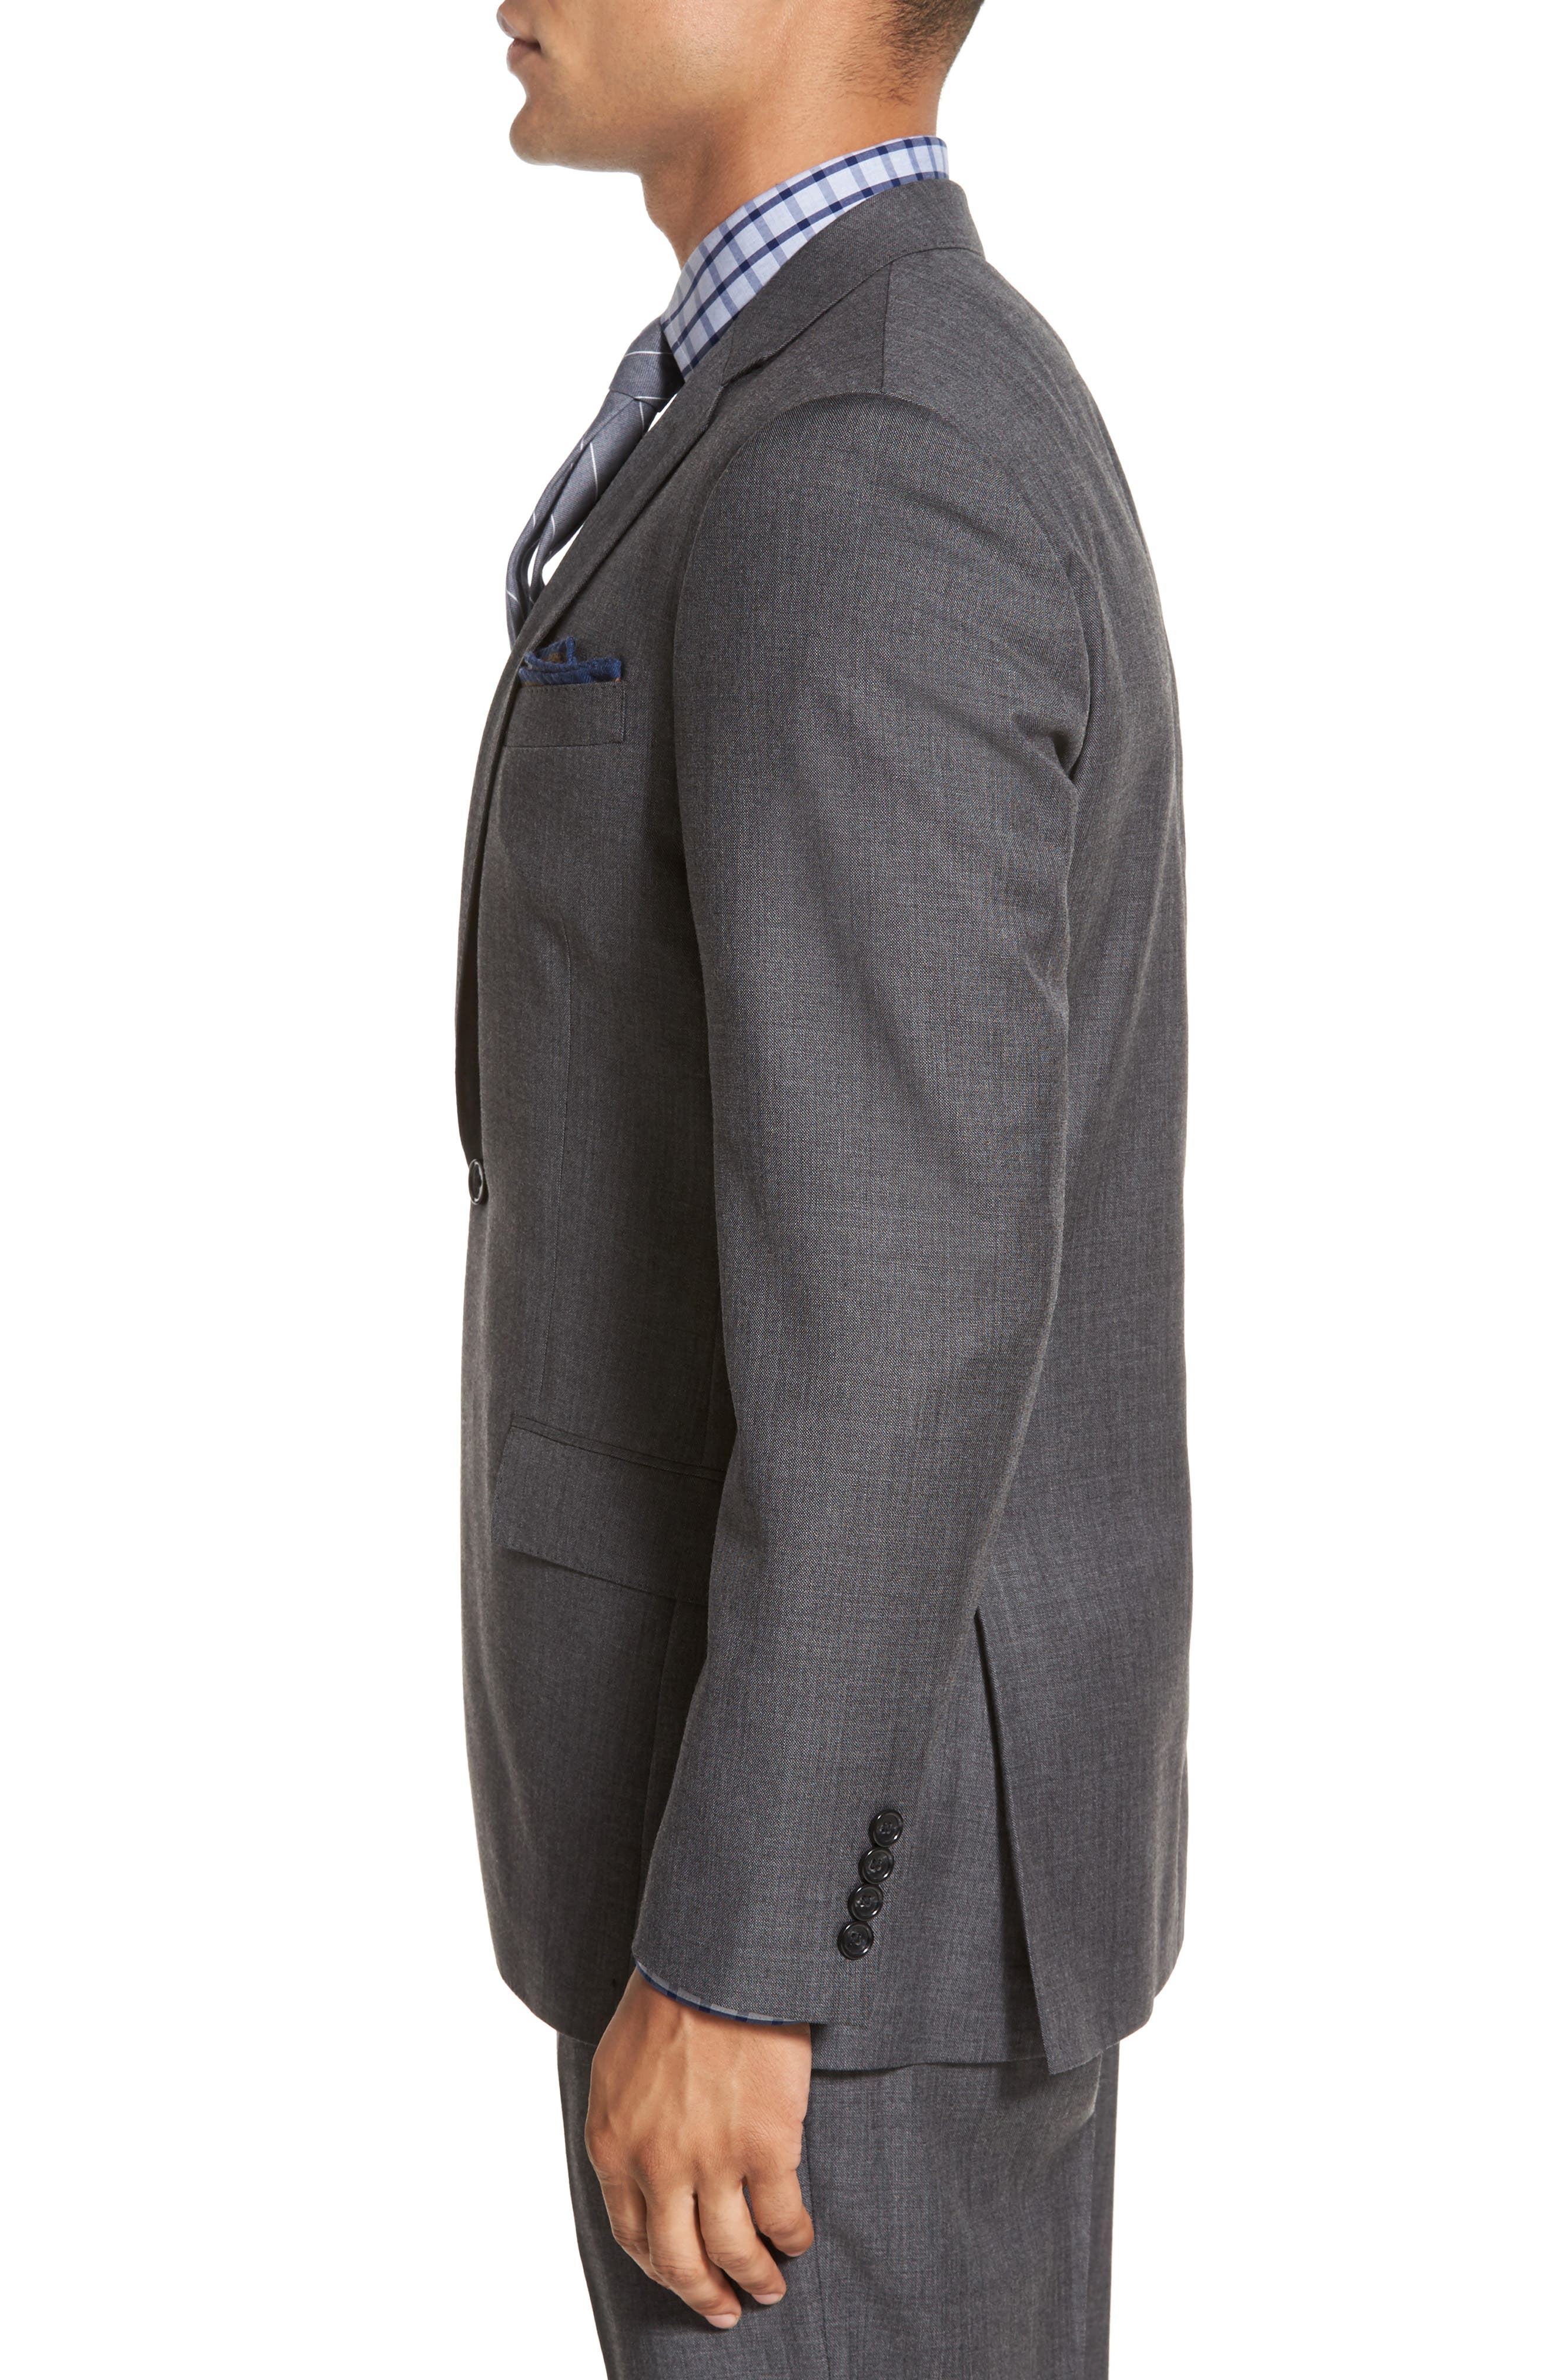 J.Crew Ludlow Trim Fit Solid Wool Sport Coat,                             Alternate thumbnail 3, color,                             Charcoal